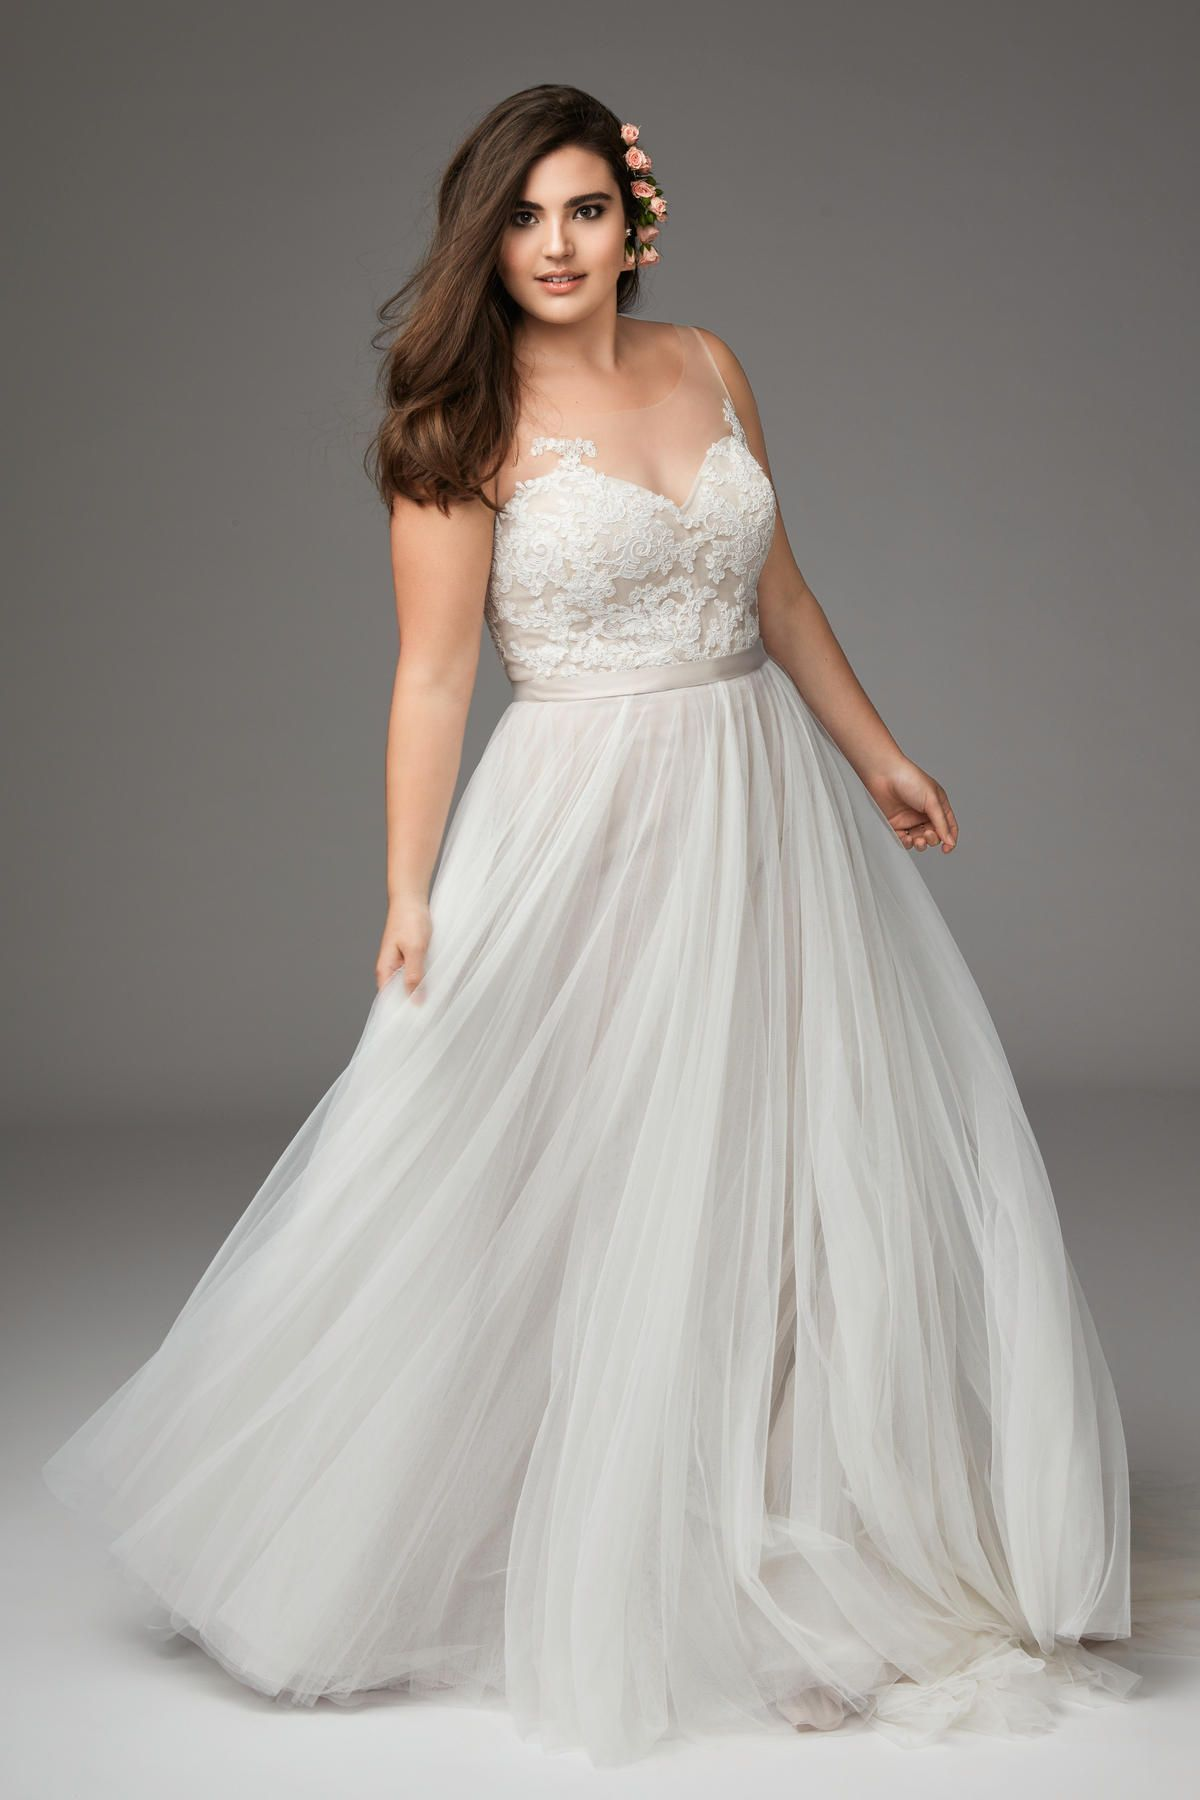 The Perfect Combination Of Past And Present Bridal And Formal Inc Used Wedding Dresses Curvy Bride Wedding Dresses Plus Size [ 1800 x 1200 Pixel ]